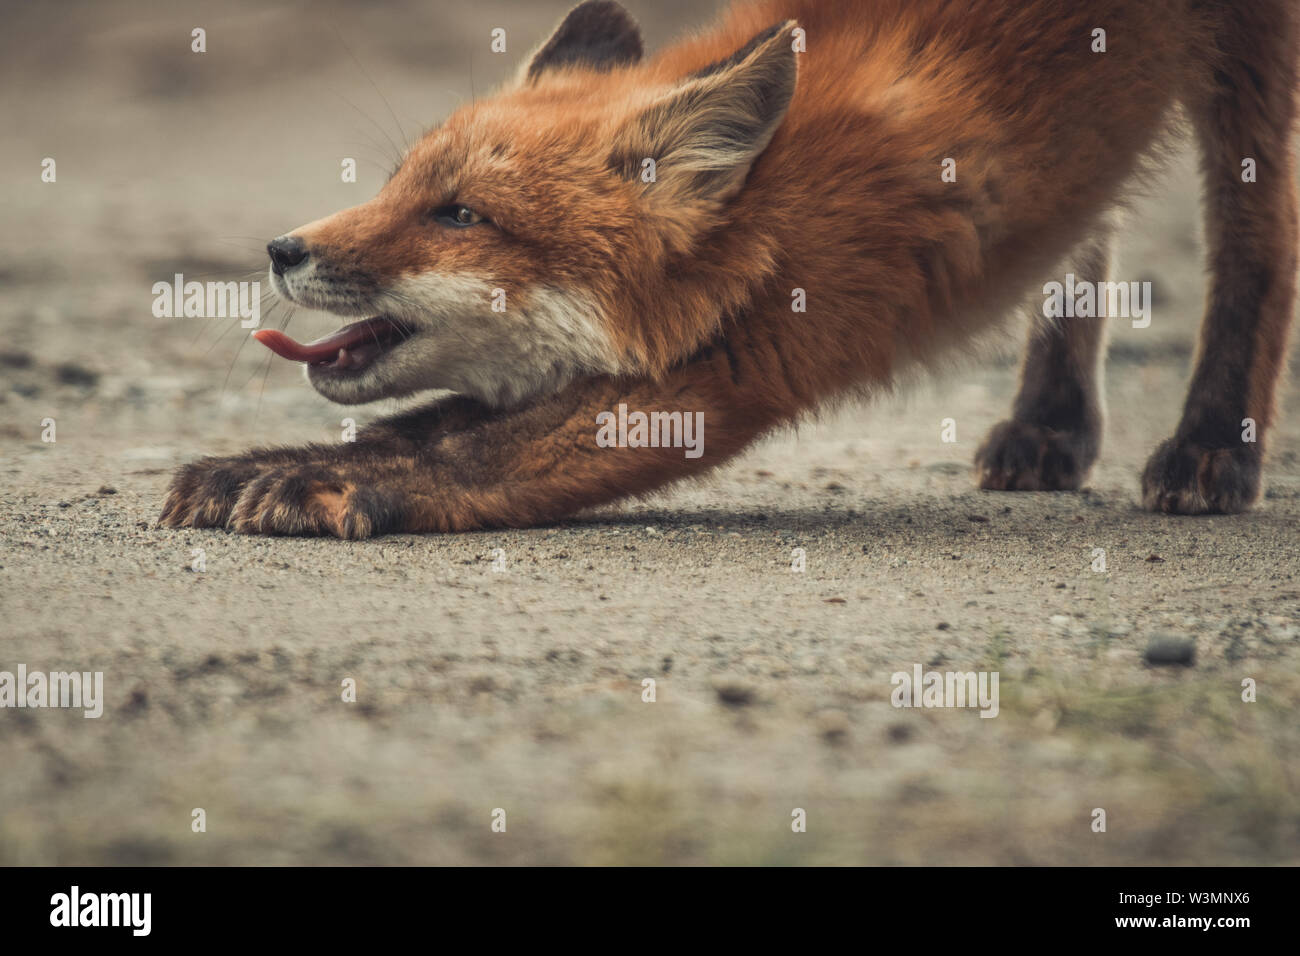 A young red fox (Vulpus vulpus) stretches and yawns while he is exploring the world. Yukon Territory, Canada - Stock Image